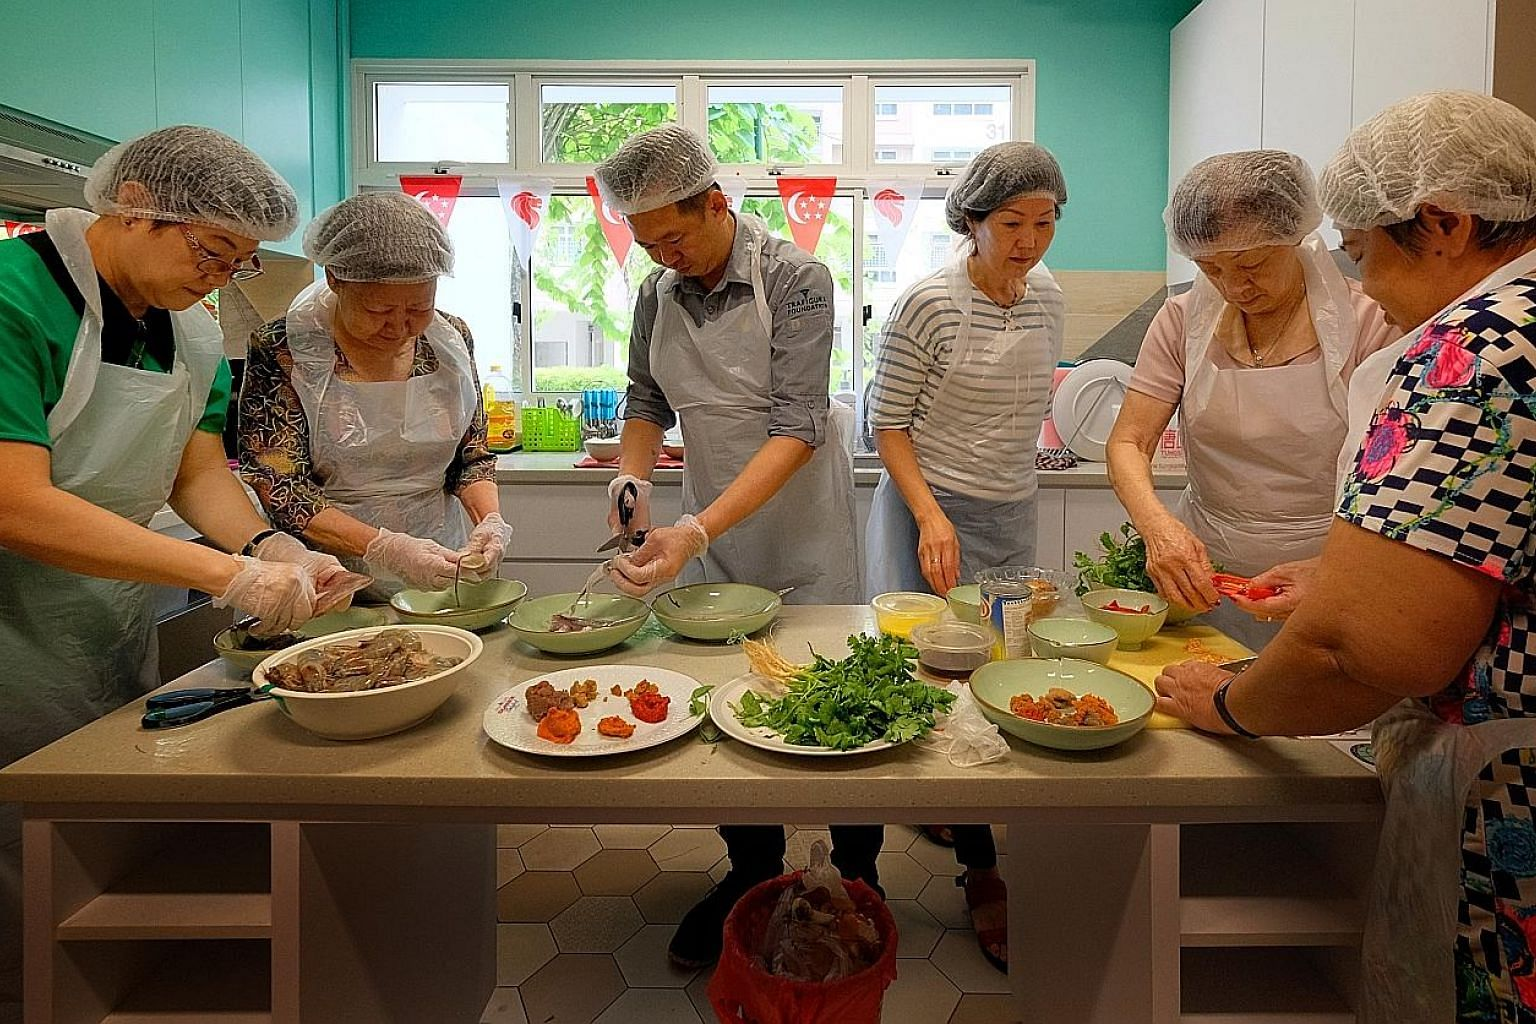 Trainees (from left) Hoo Jan Wah, 77, Tan Soi Noi, 60, Ng Siew Tim, 60, Heng Tang Kwee, 69, and Chia See Moy, 68, watch intently as Mr Wang (not in photo) stirs assam paste in the wok. Some of them cover their faces with cloth as the chilli from the